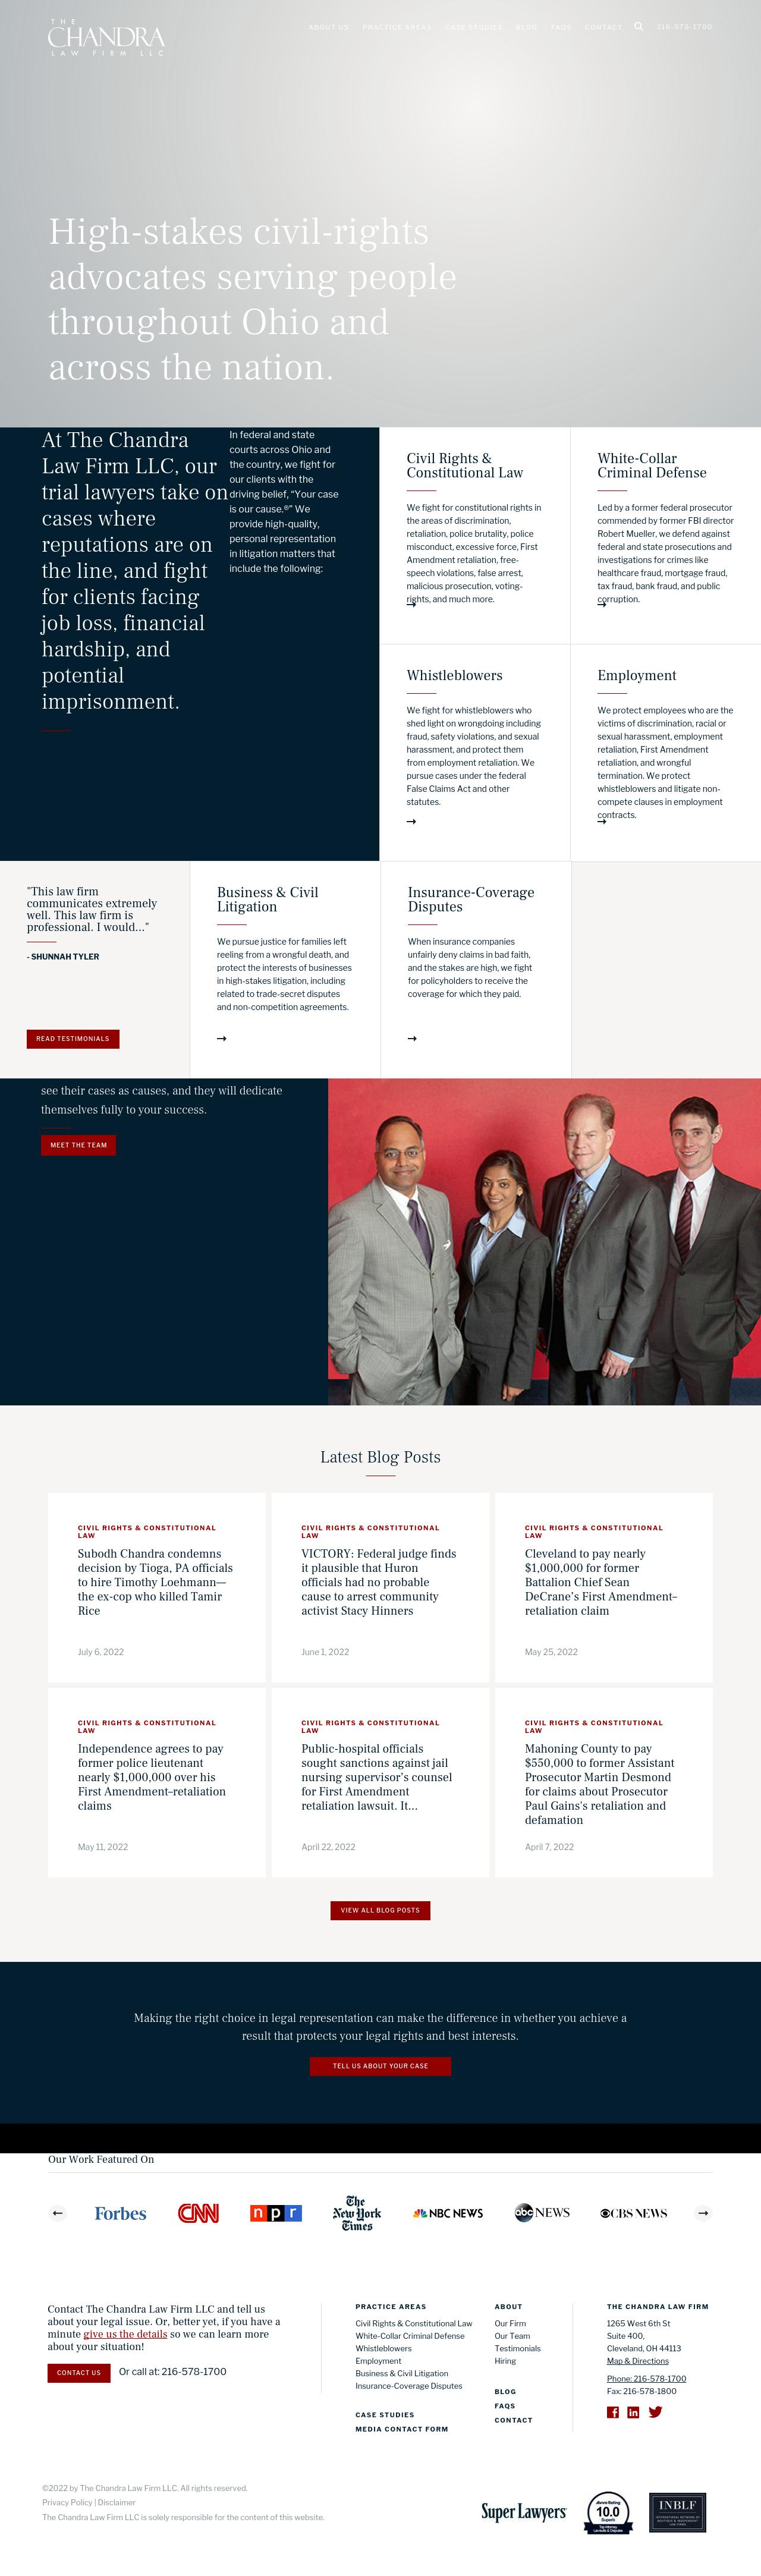 The Chandra Law Firm LLC Cleveland OH Law